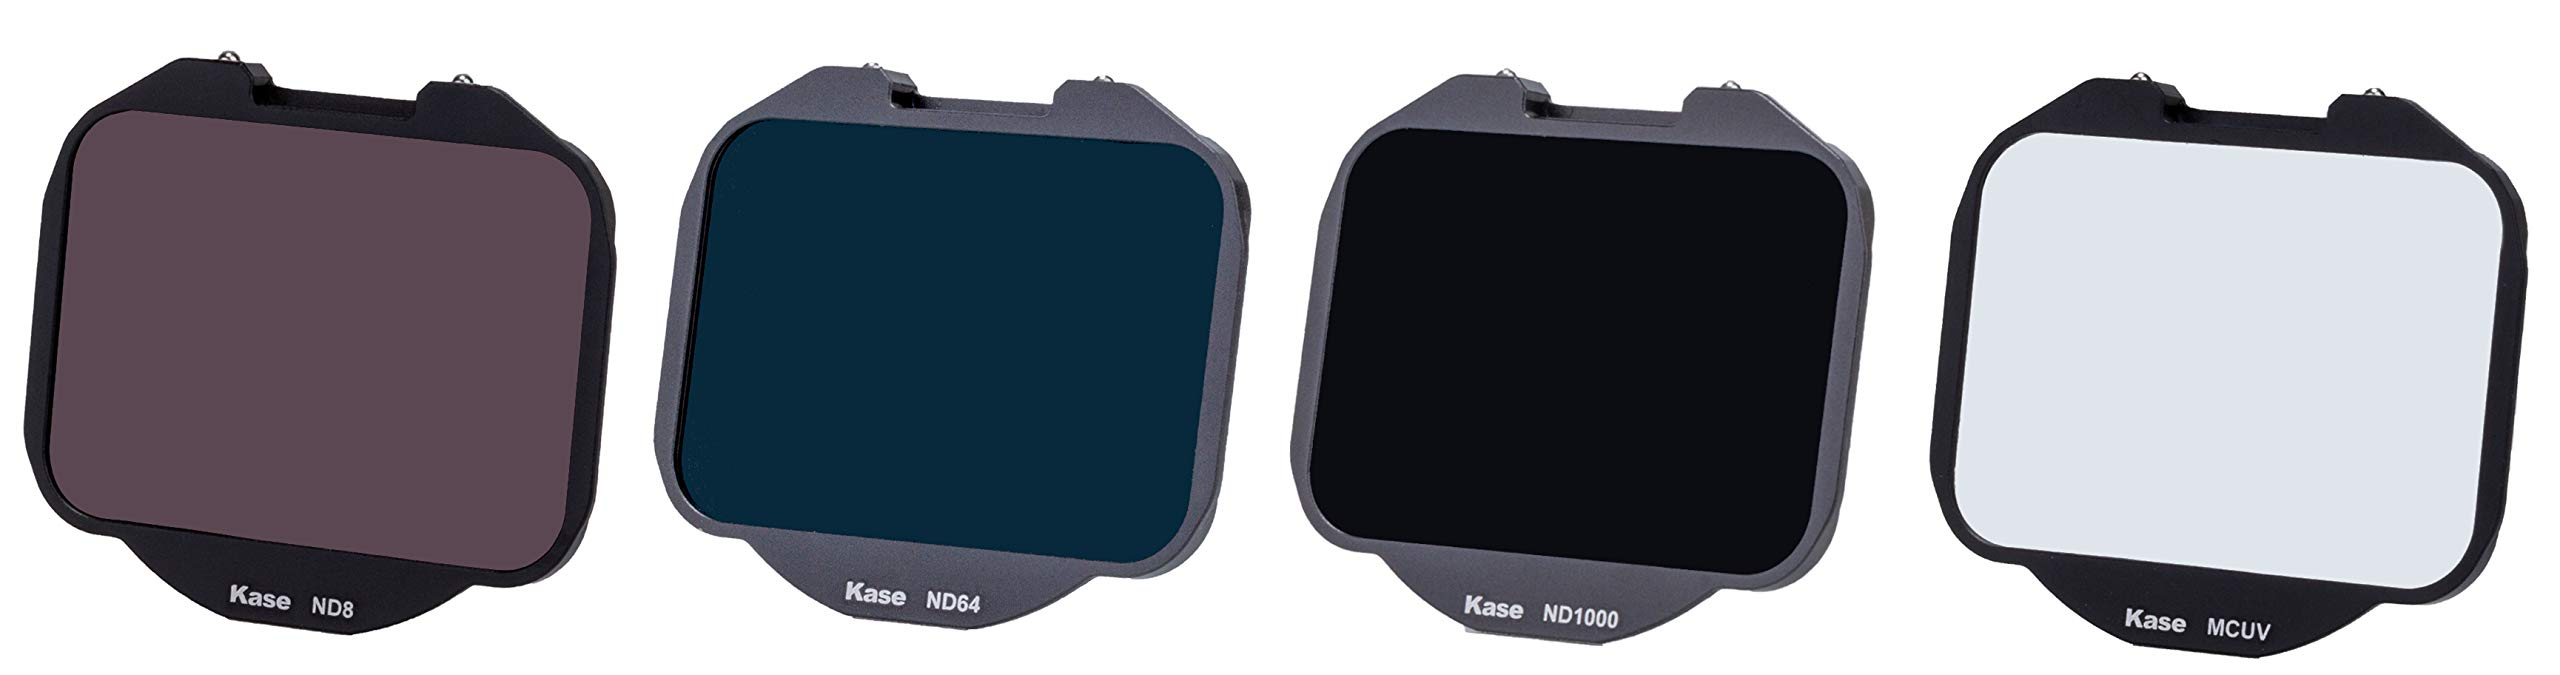 Kase Clip-in ND8 3 Stop Filter Dedicated for Sony Alpha Camera